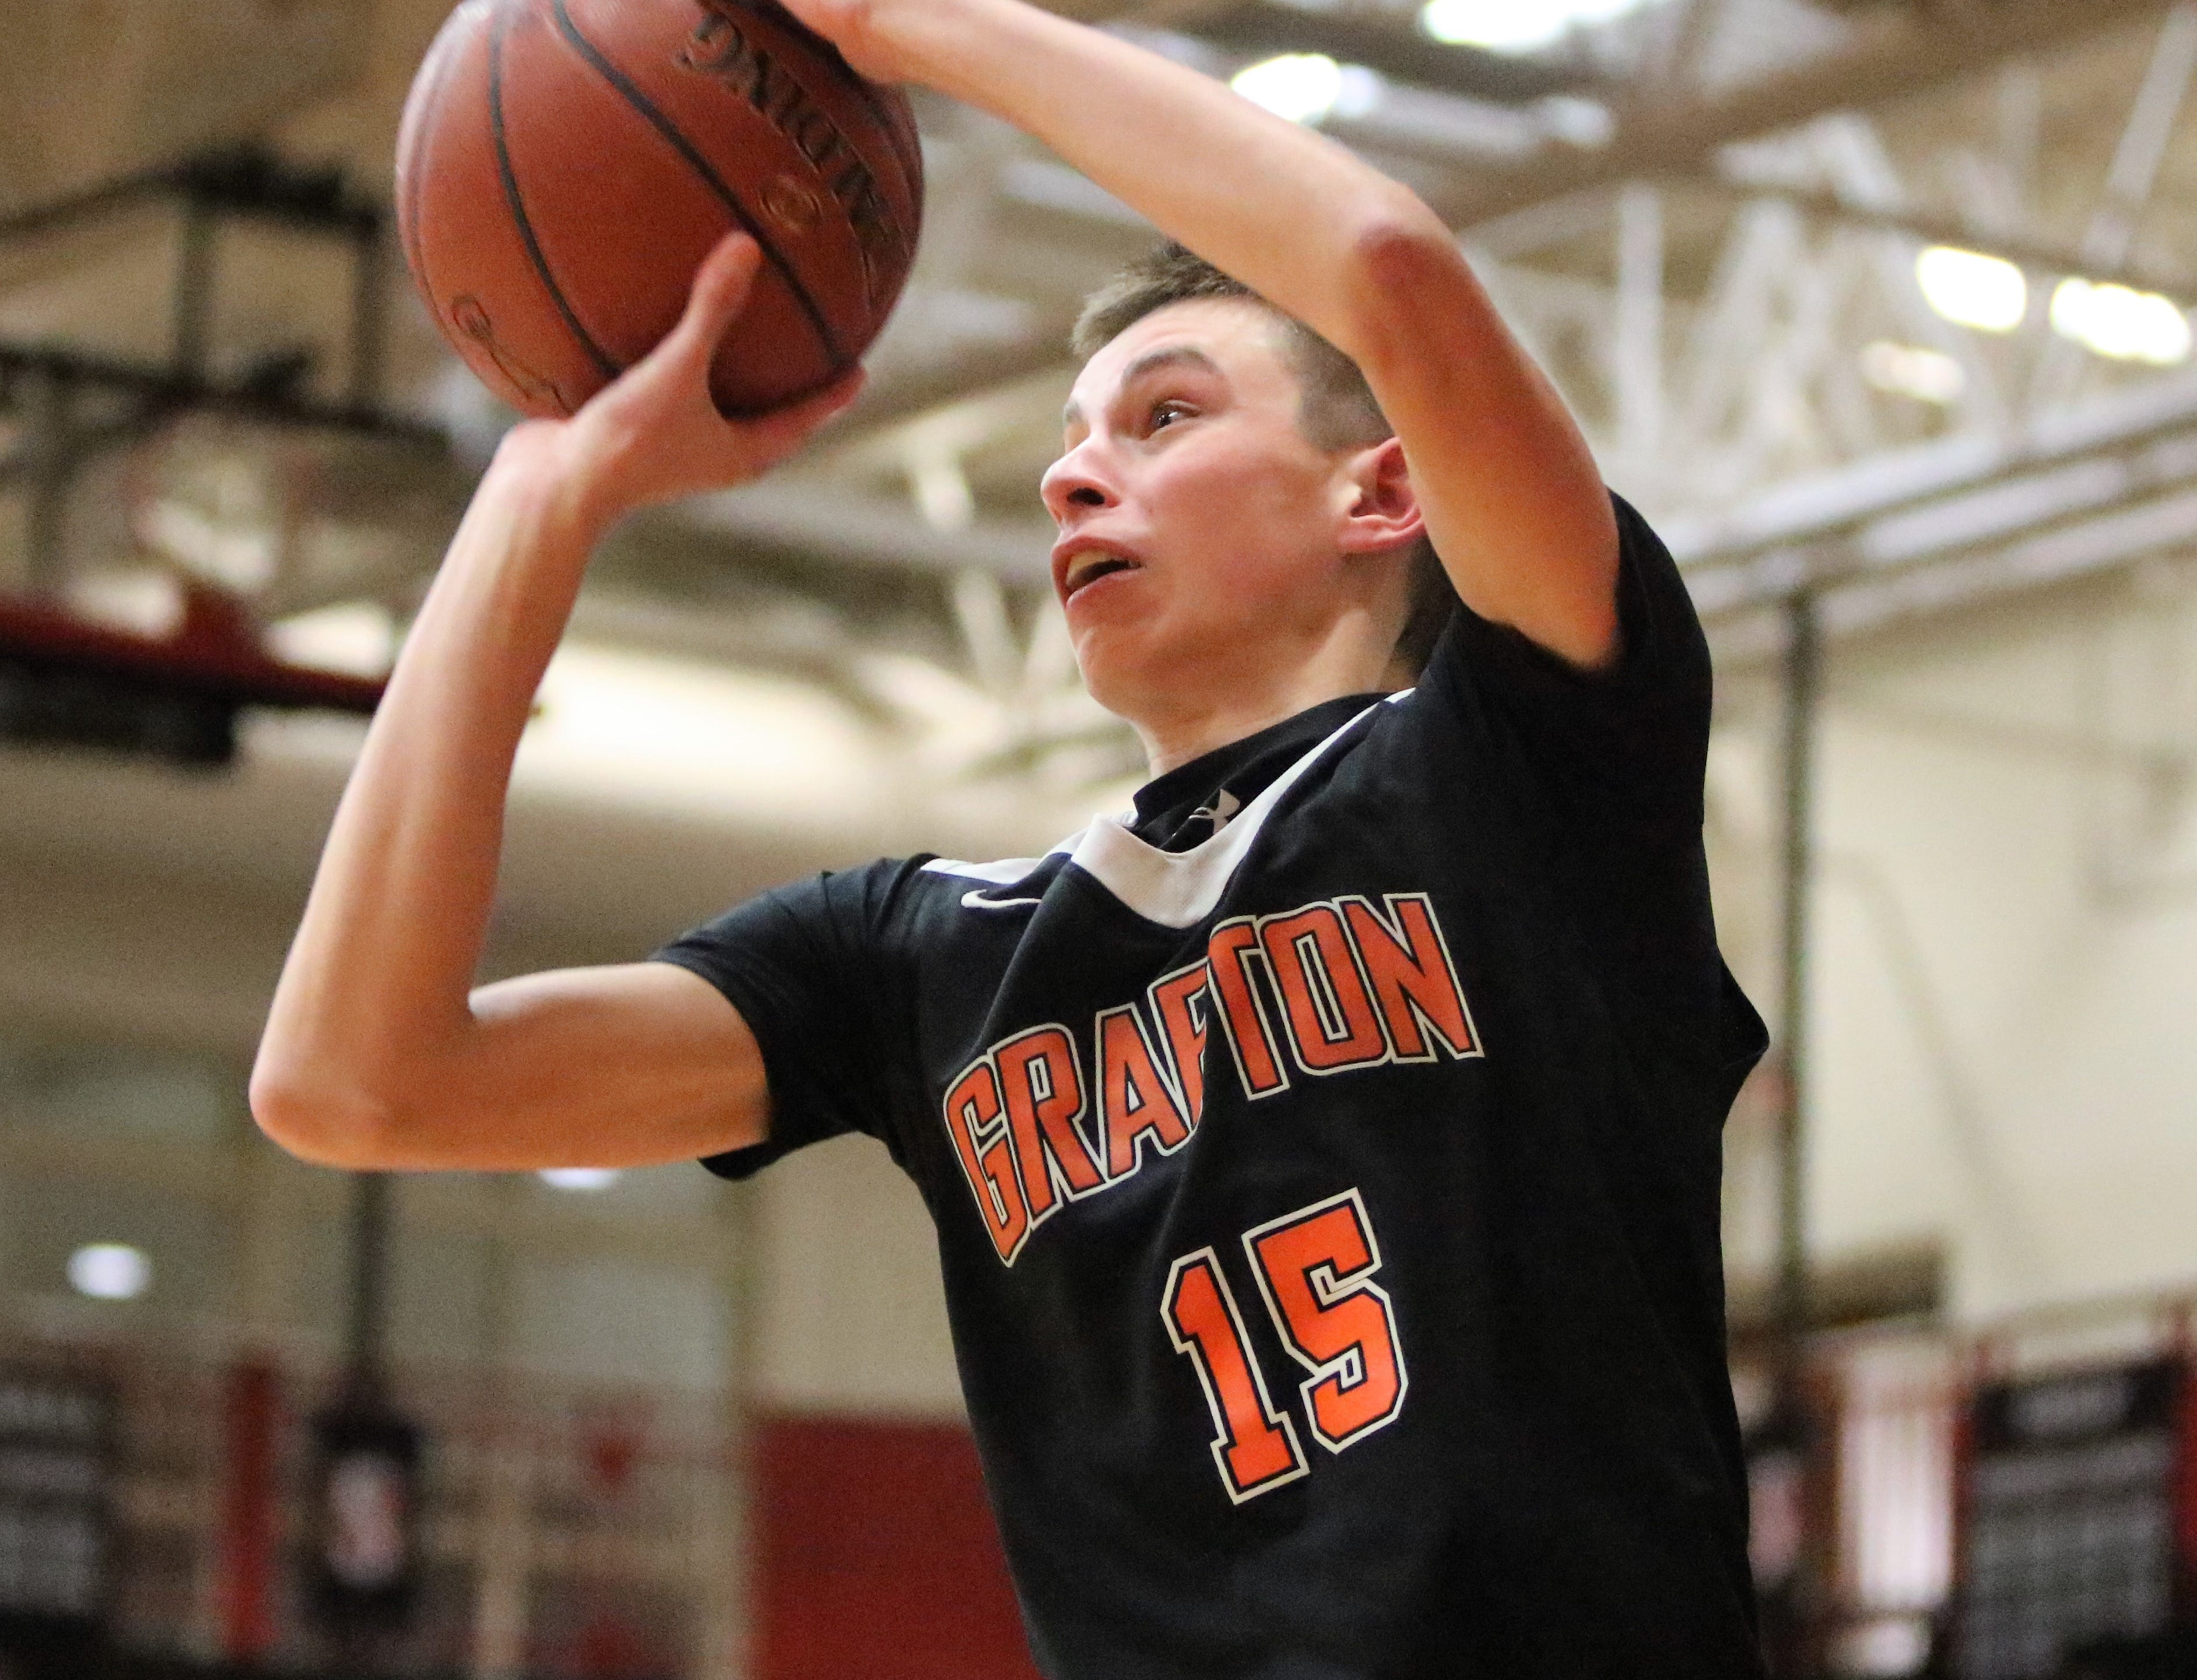 Grafton guard Jacob Aleknavicius lines up a three-pointer in a game against South Milwaukee on Jan. 22, 2019.